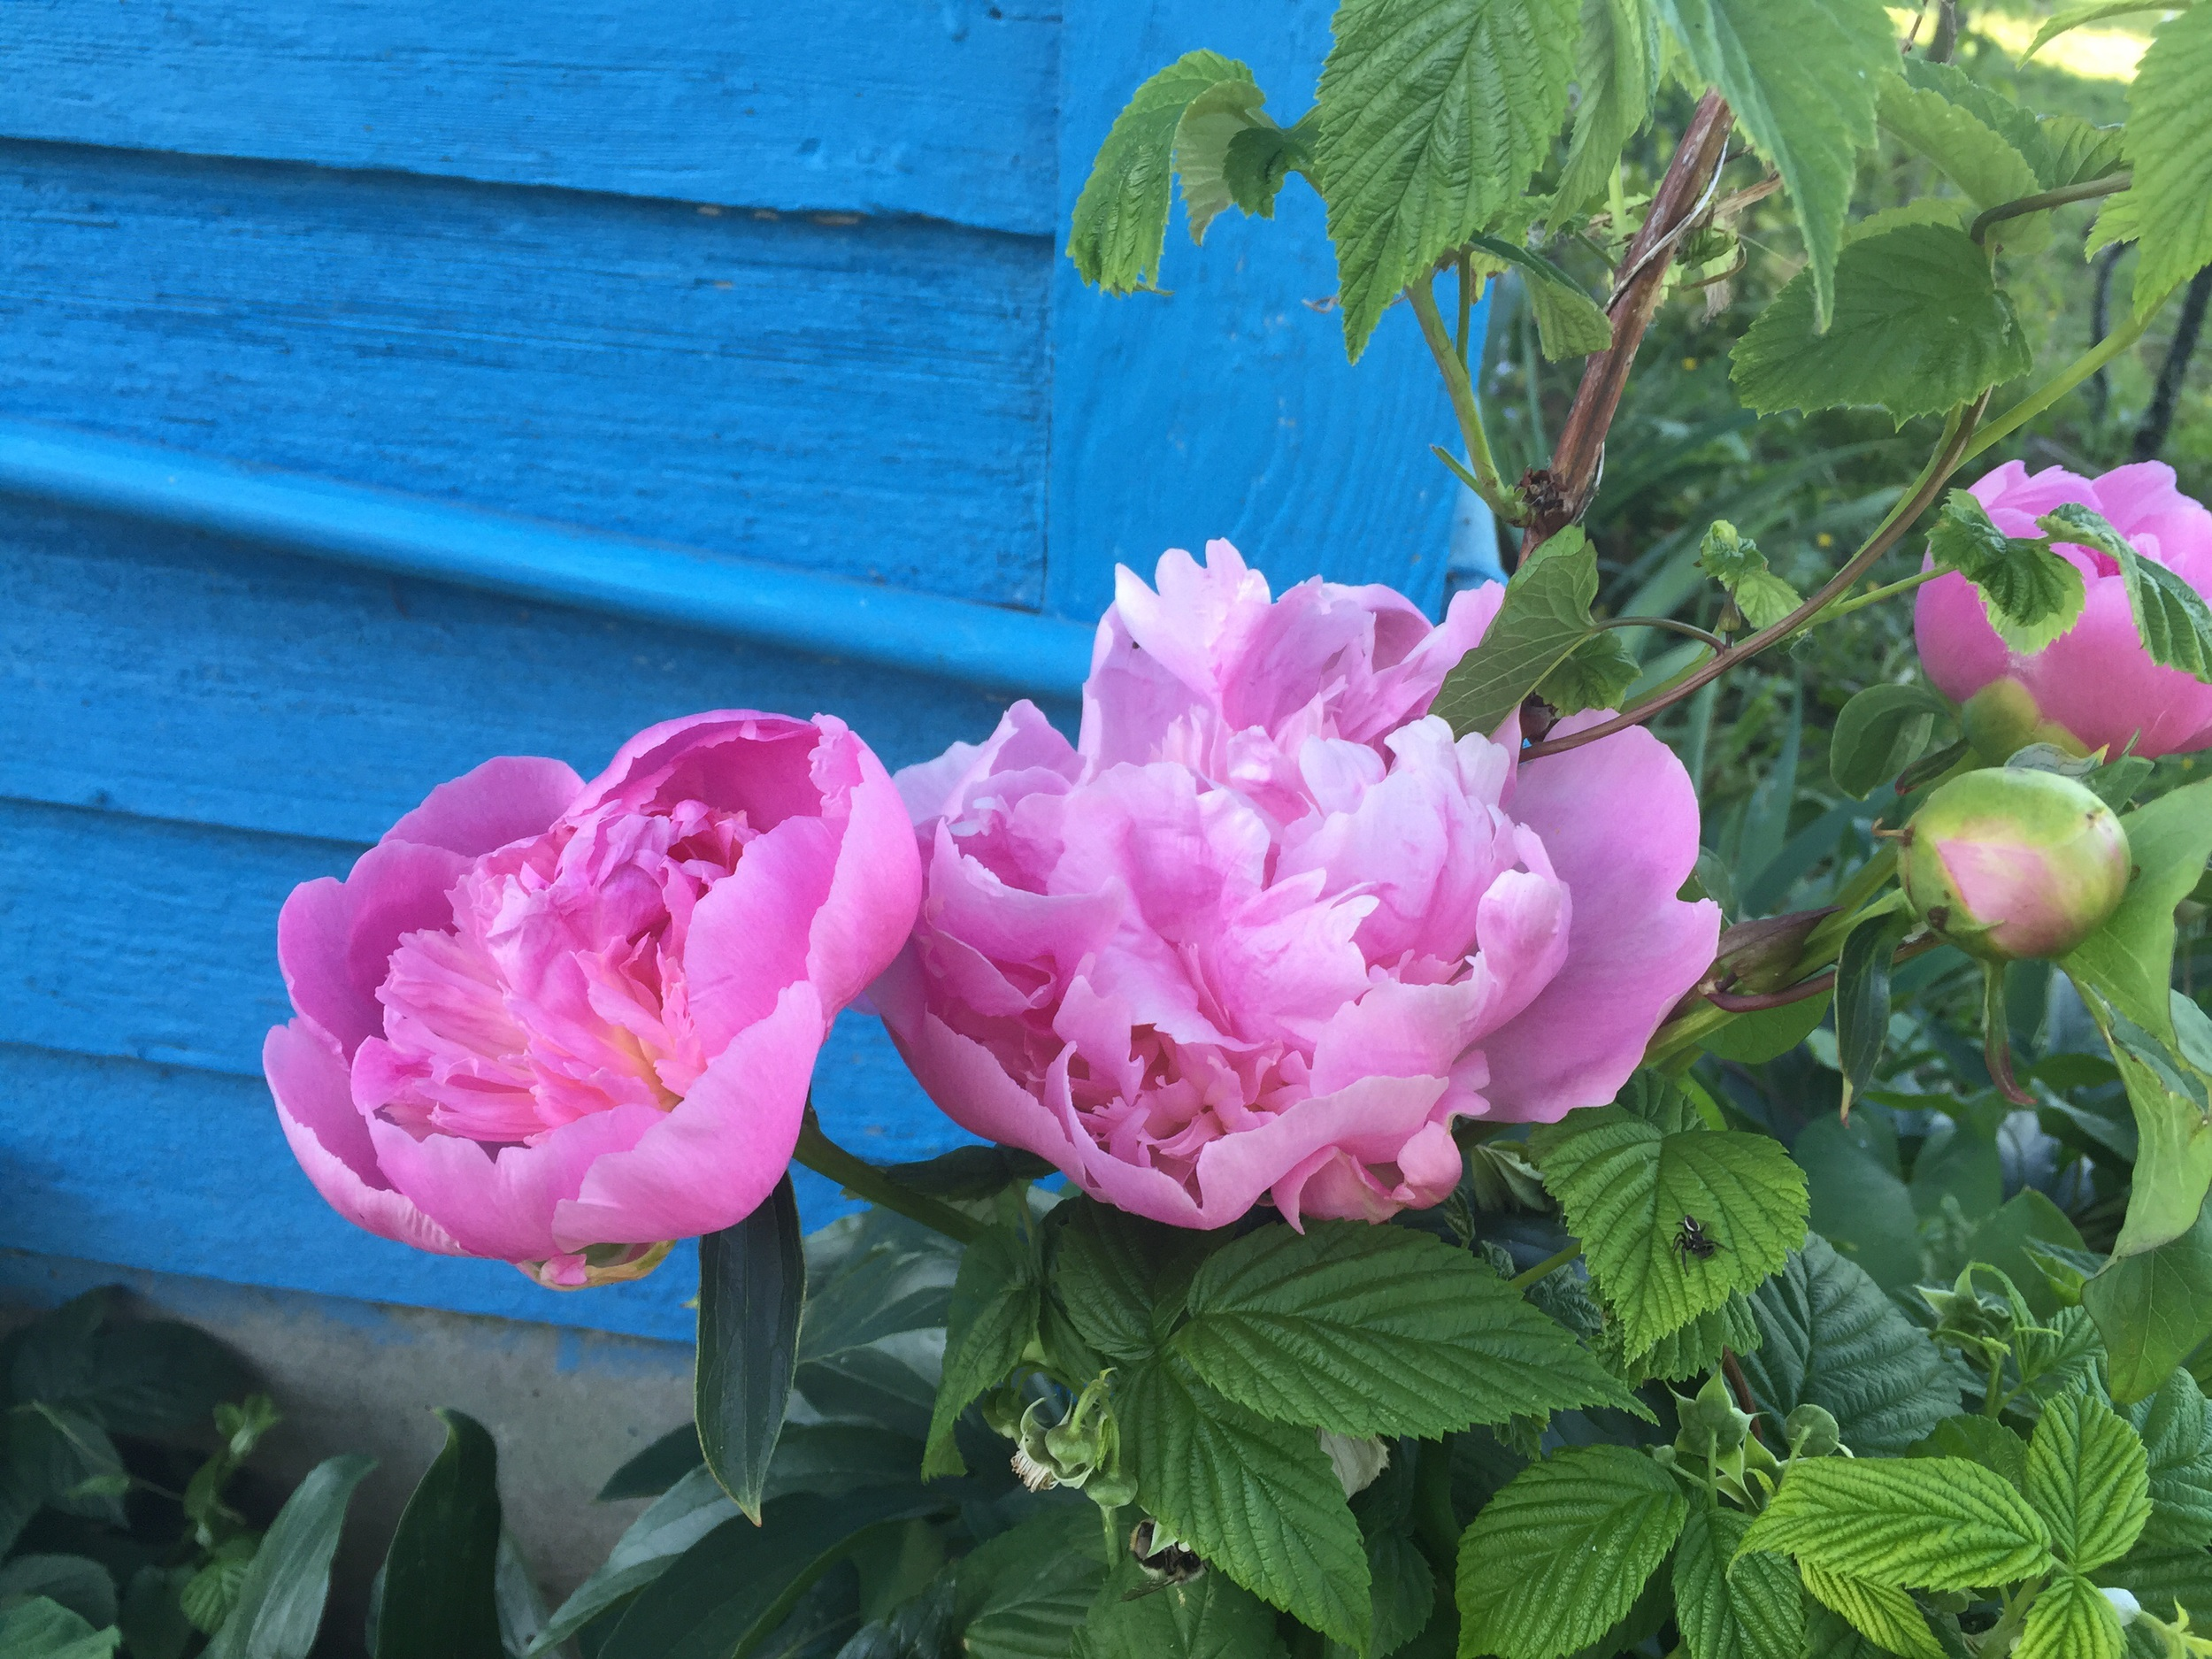 Peonies. I'm a little obsessed.